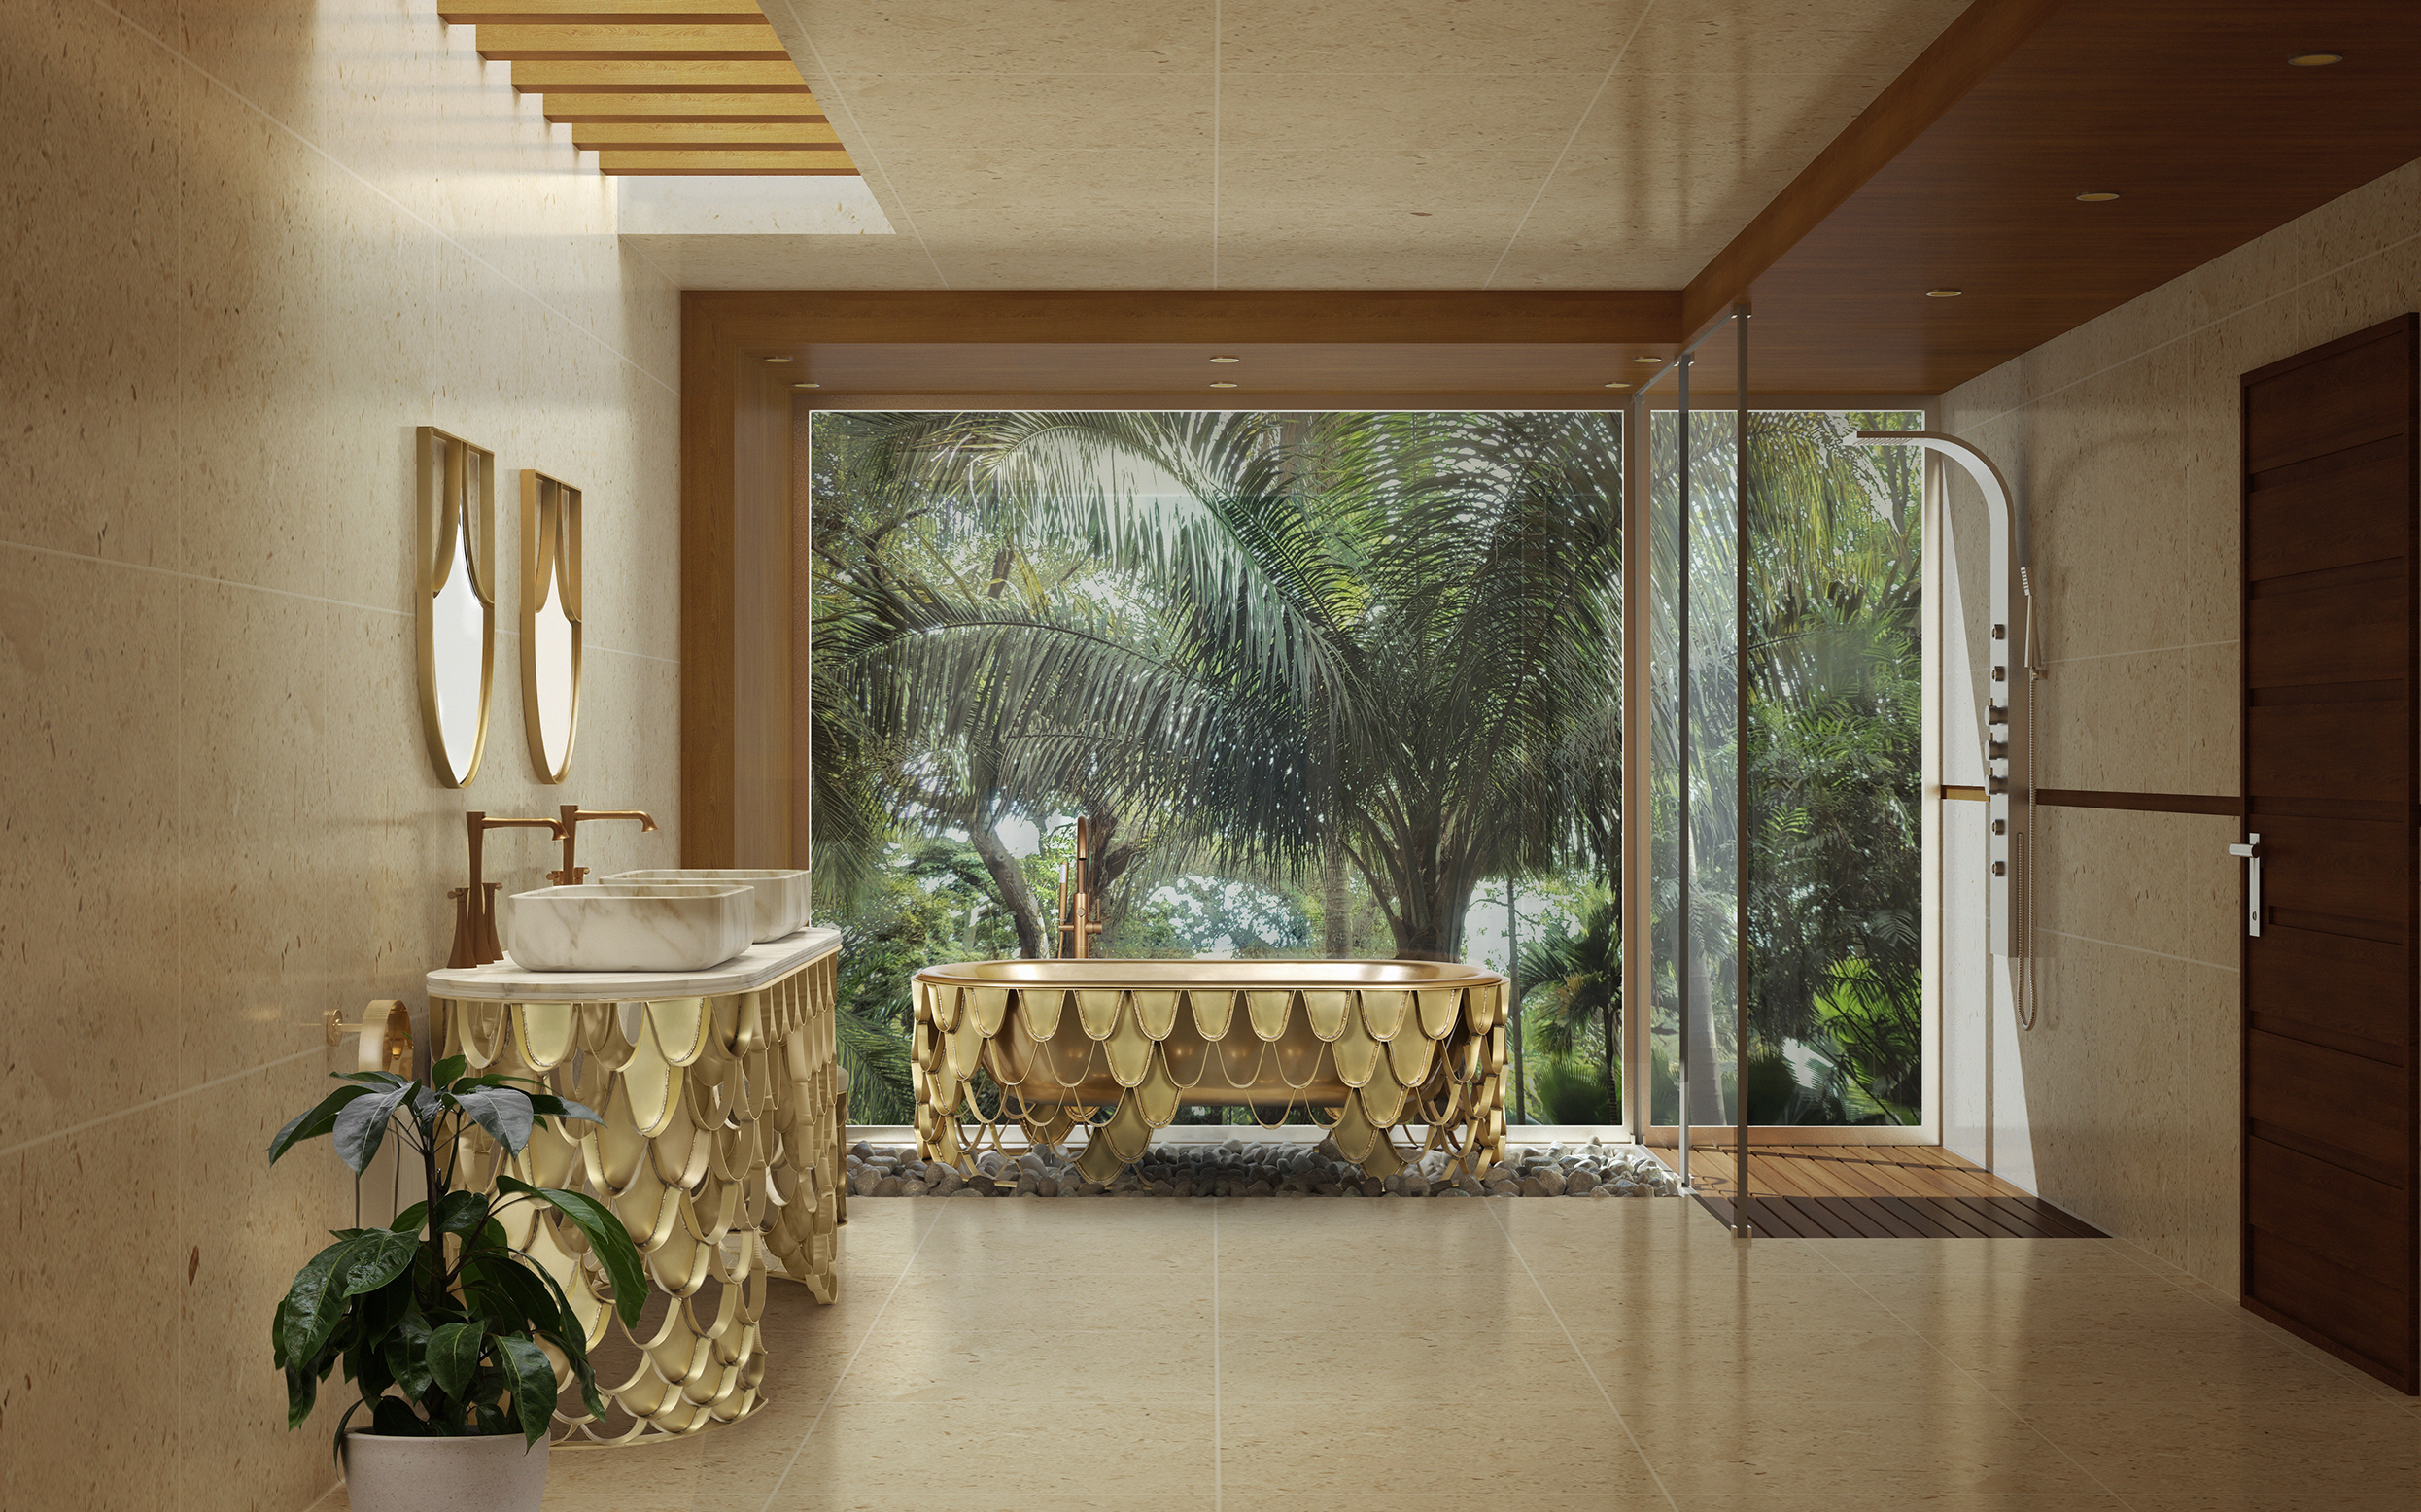 Transform your bathroom into a real spa sanctuary  Spa Sanctuary Transform your bathroom into a real Spa Sanctuary 47 koi ambience 1 HR